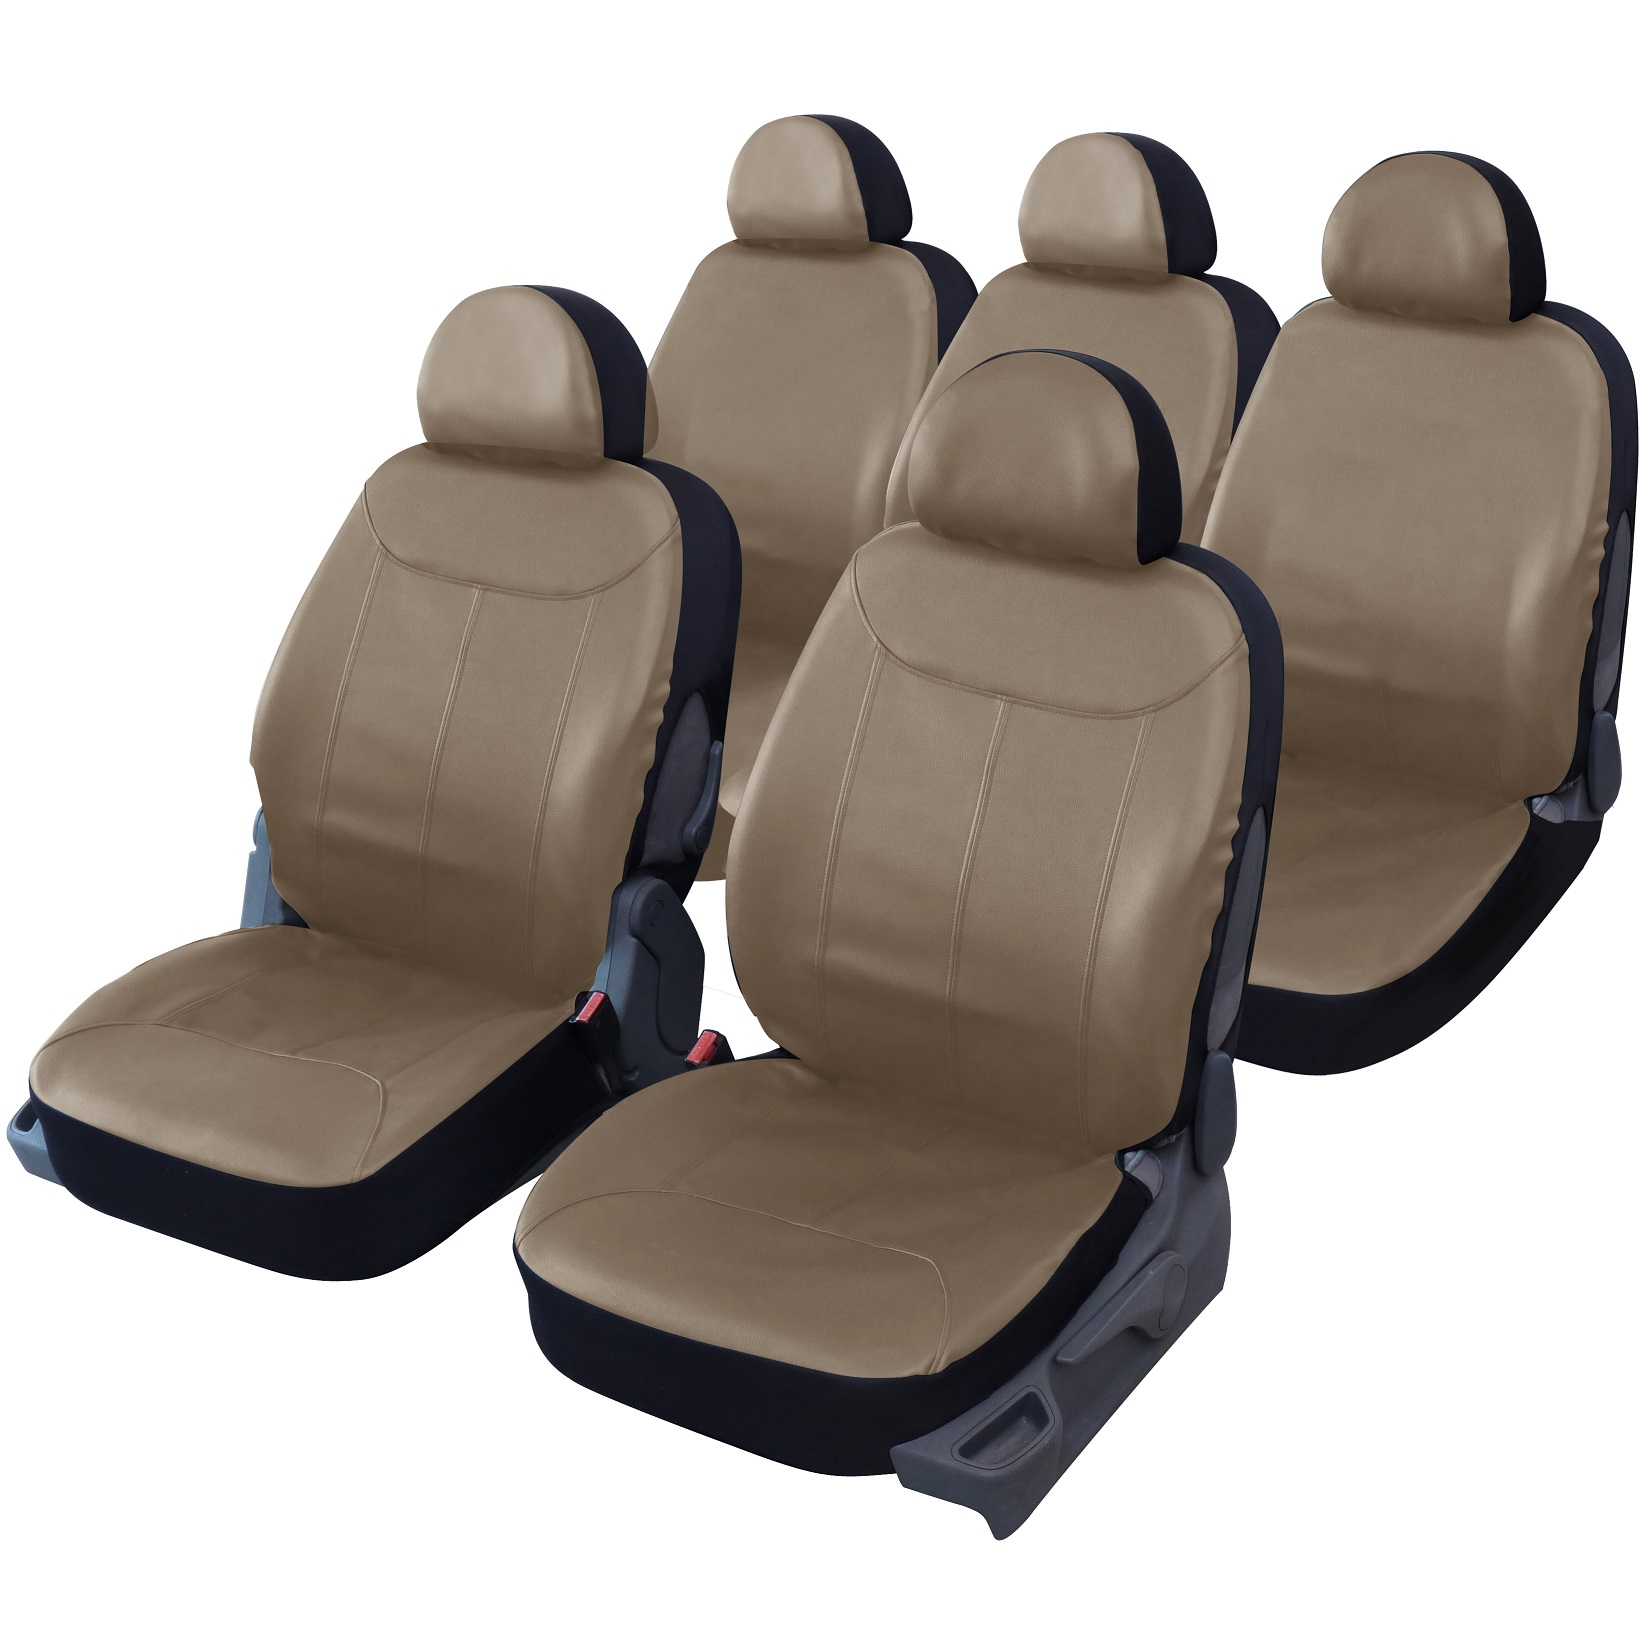 Housse de si ge auto universelle simili cuir beige texas for Housse siege auto cuir